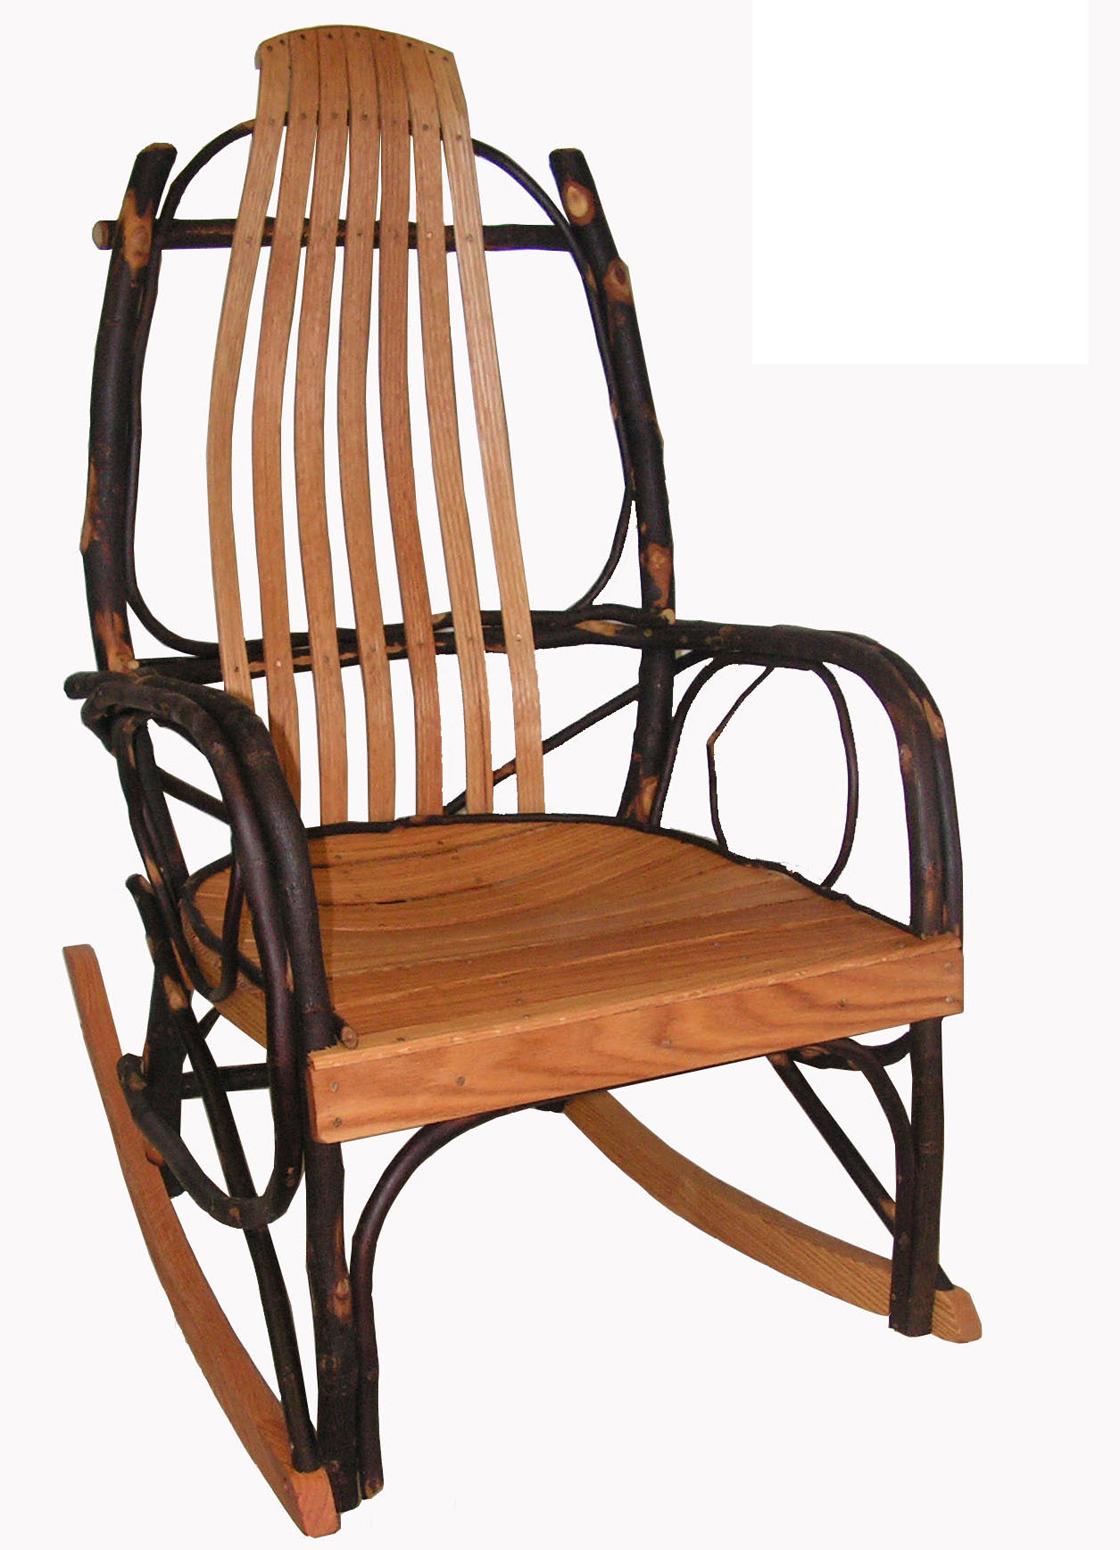 Amish Hickory and Oak bentwood rocker rocking chair